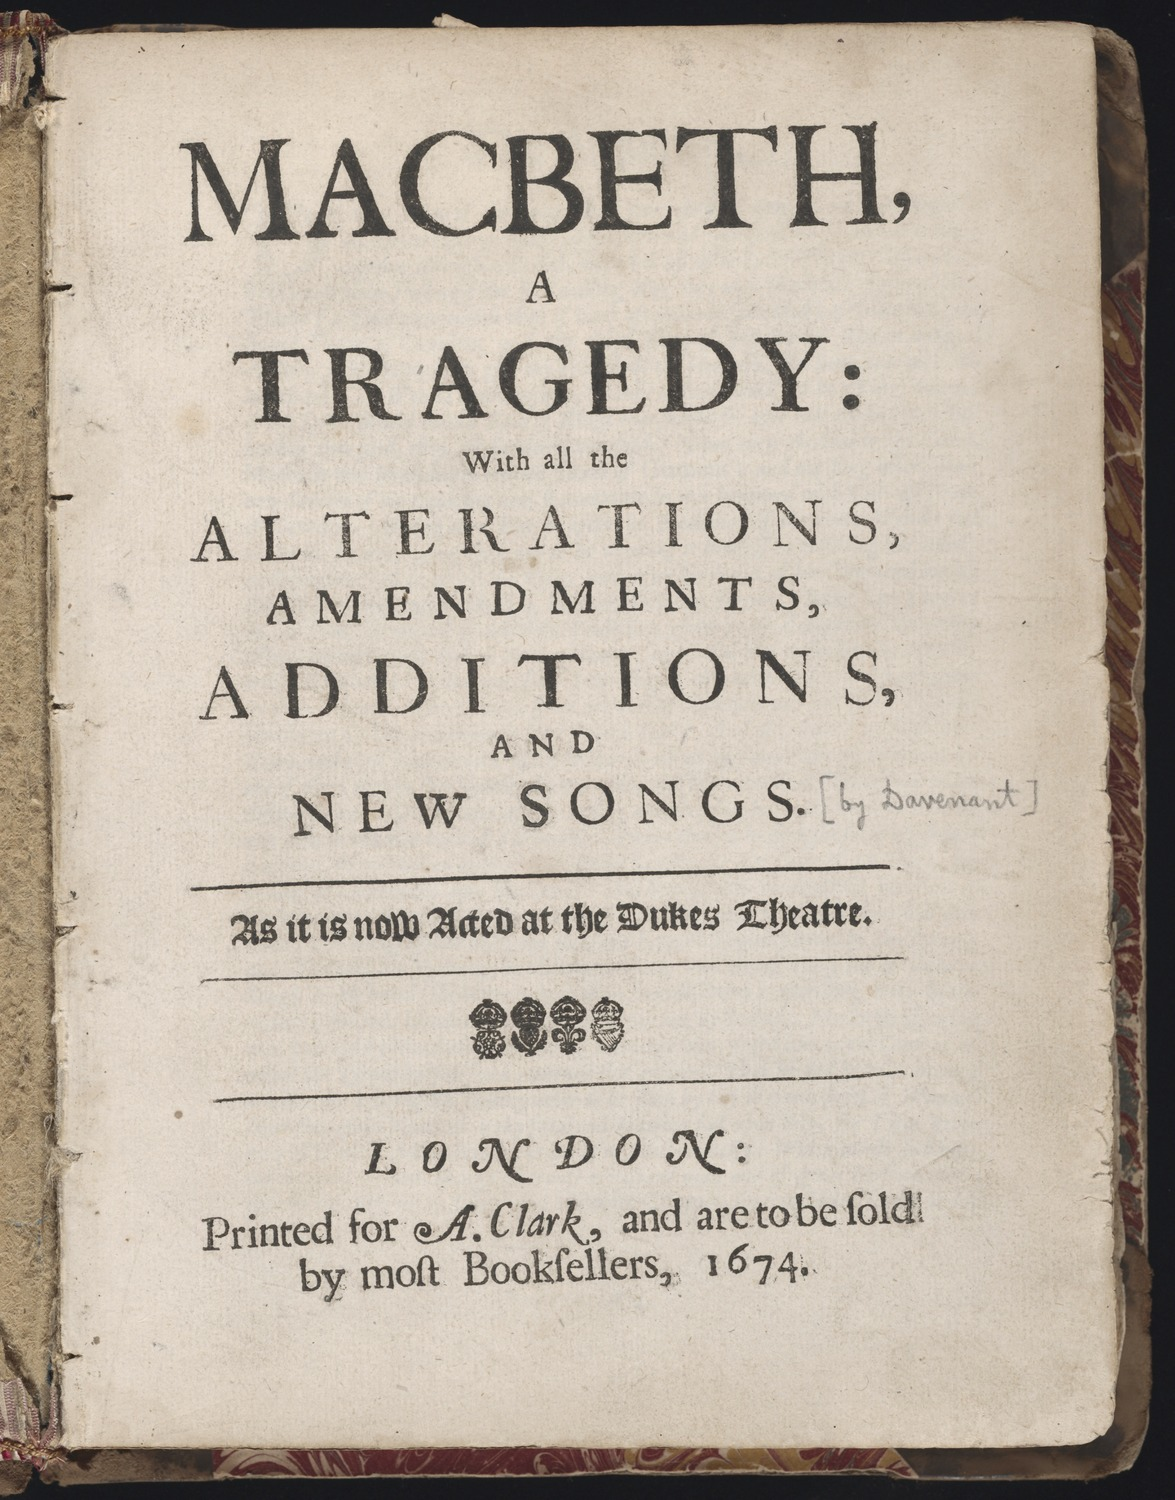 Title page of a restoration-era edition of Macbeth